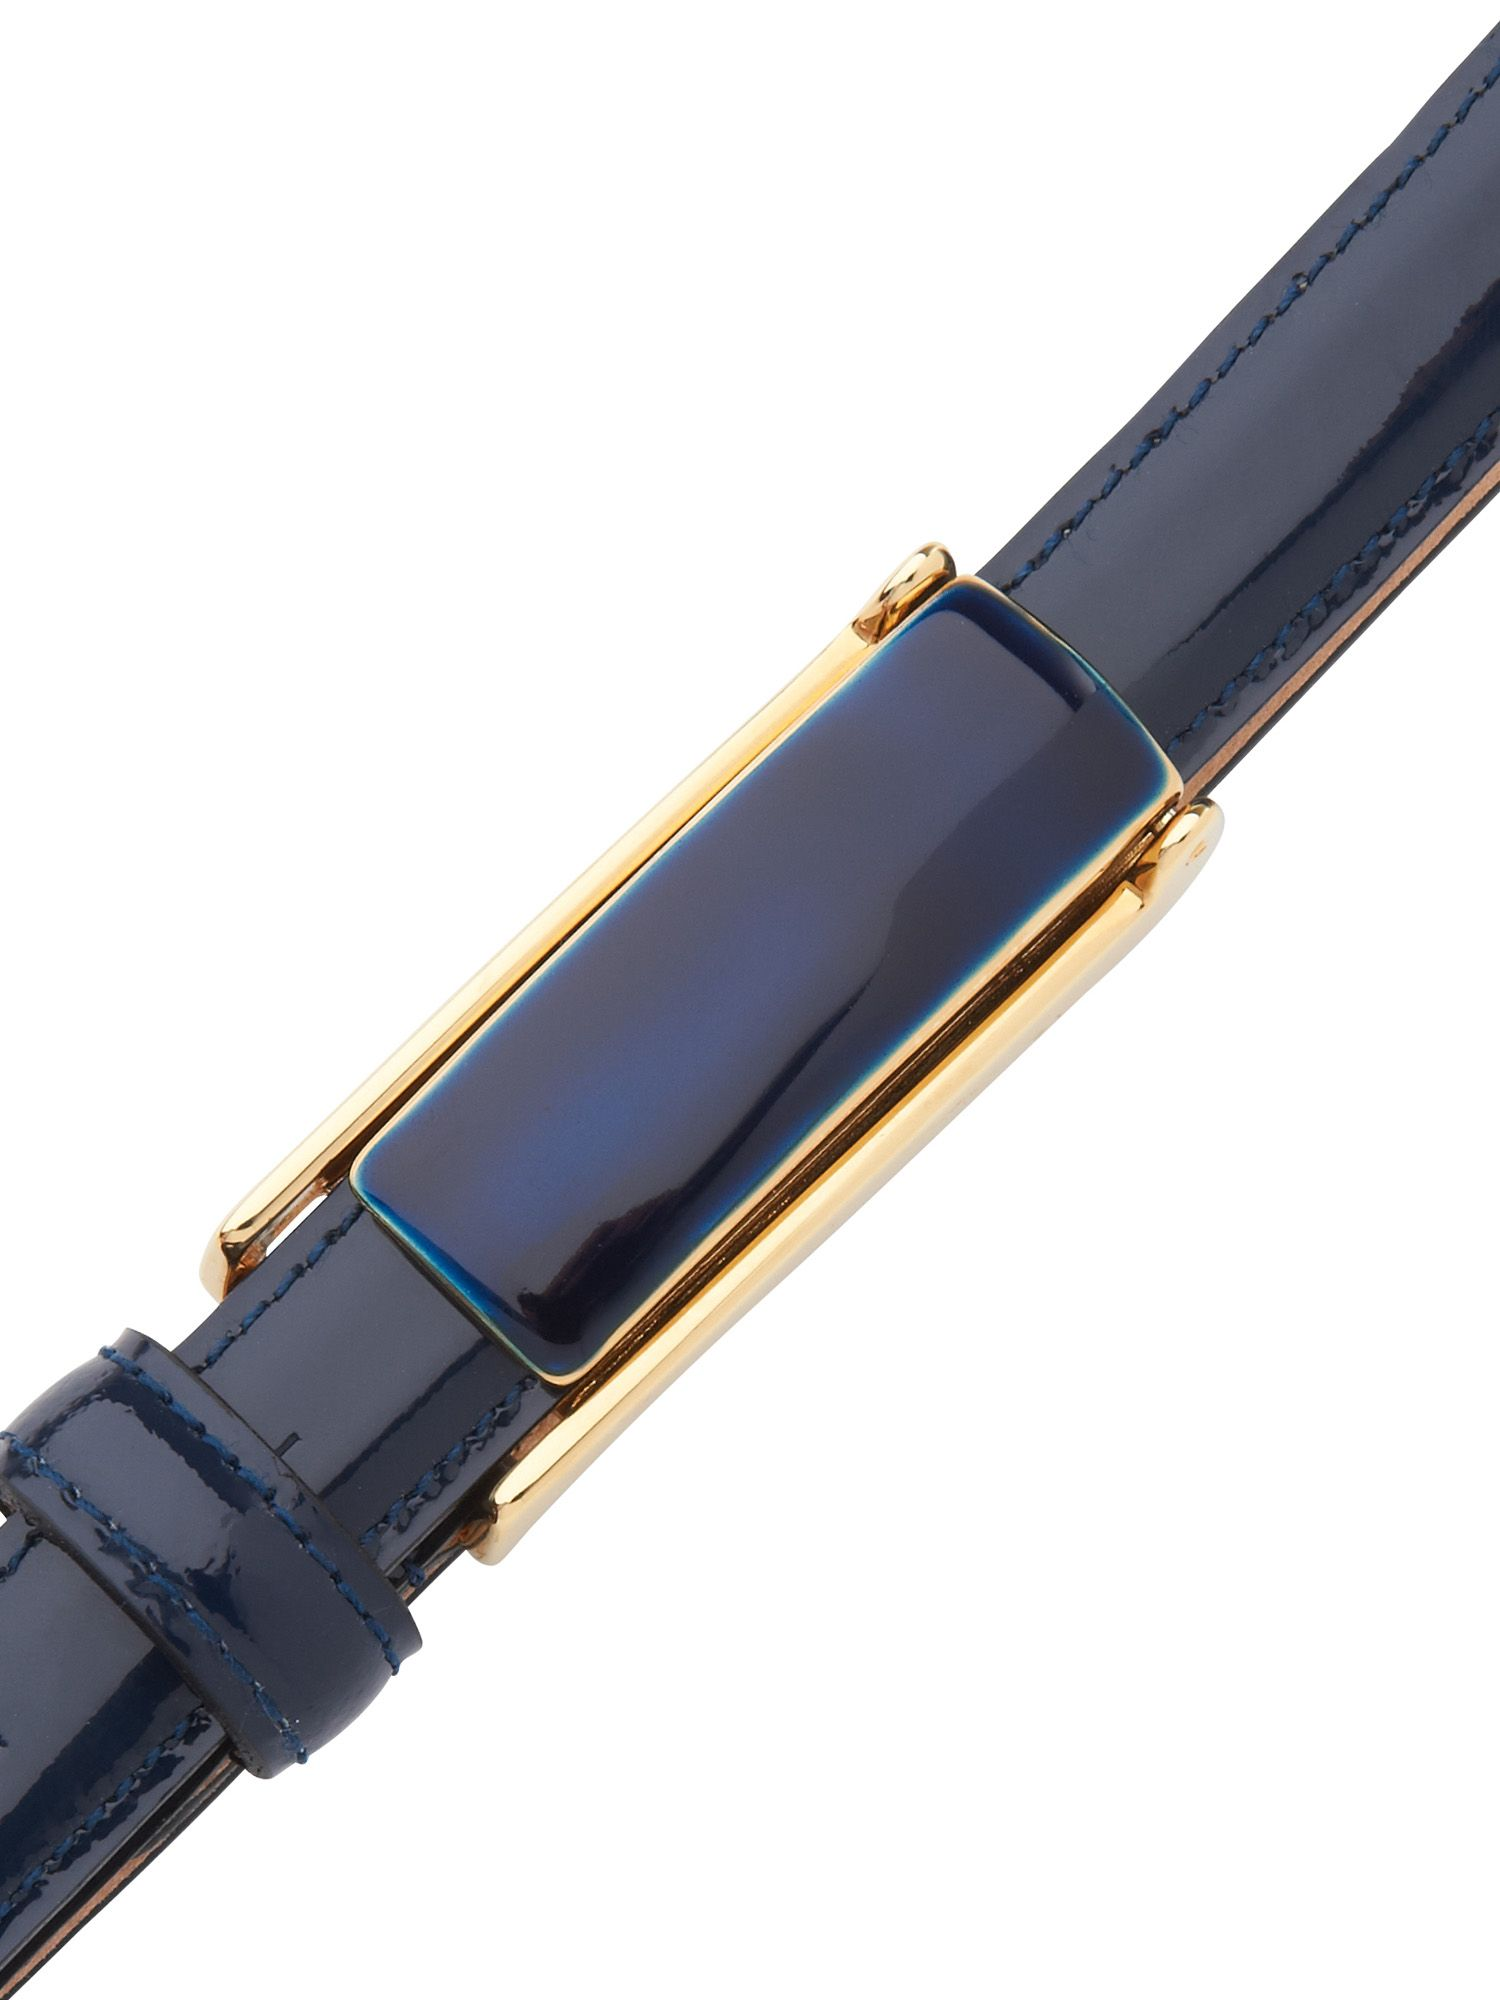 Patent trouser belt